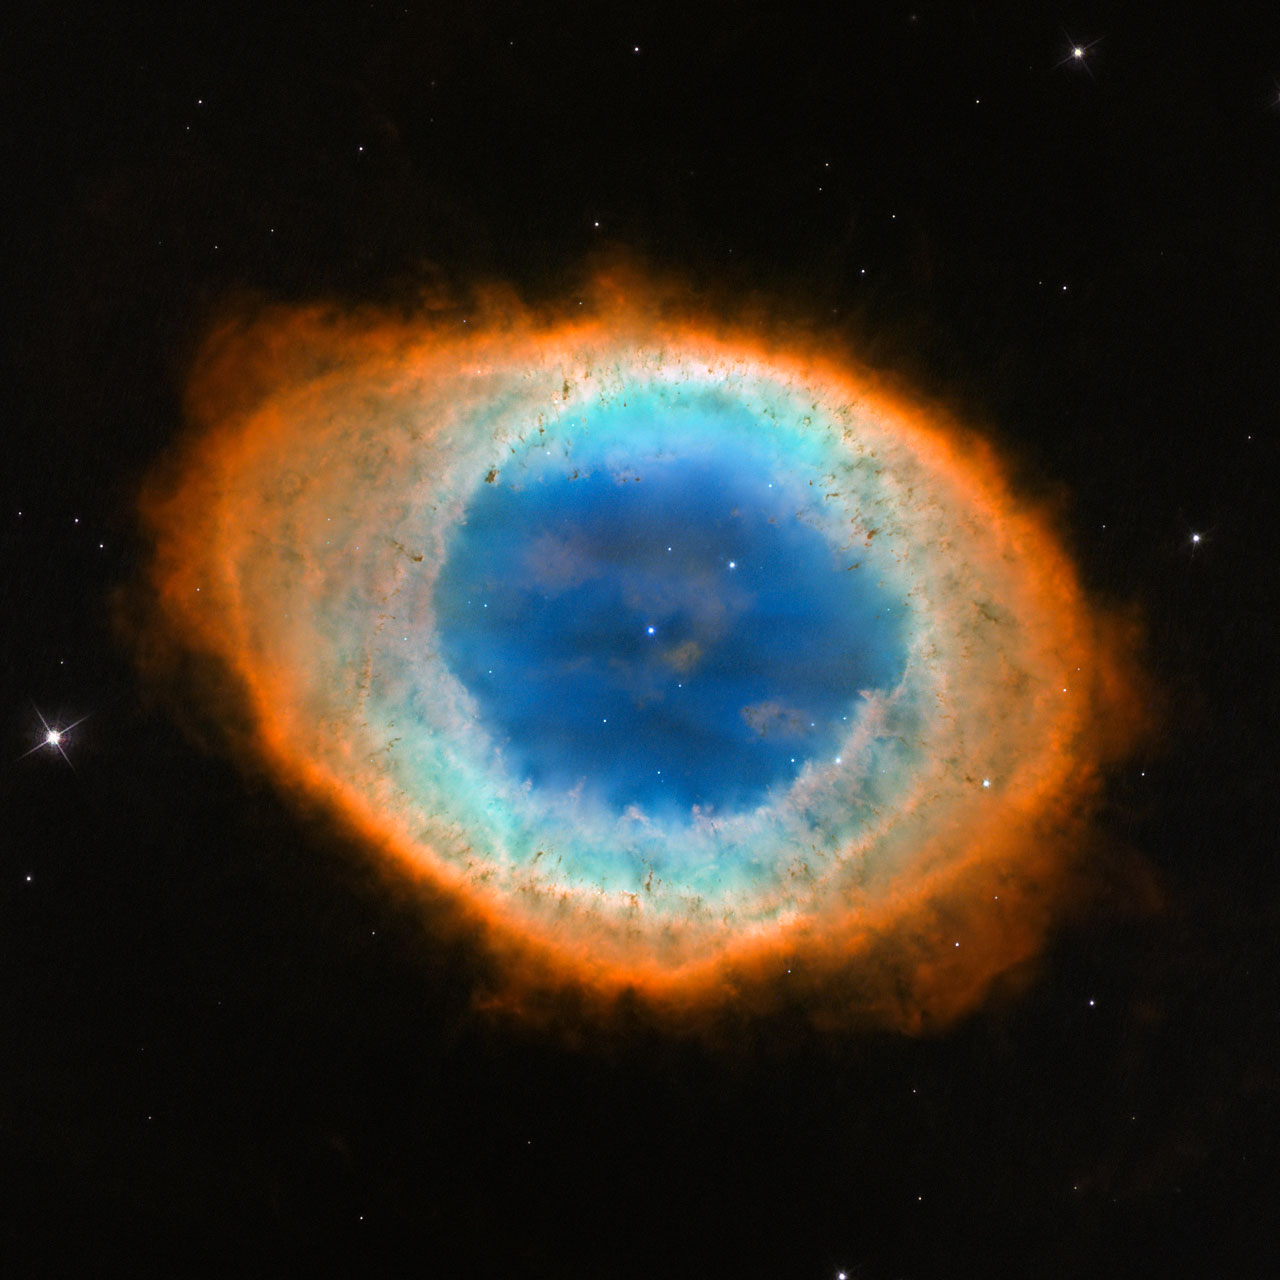 Hubble image of the Ring Nebula (Messier 57)